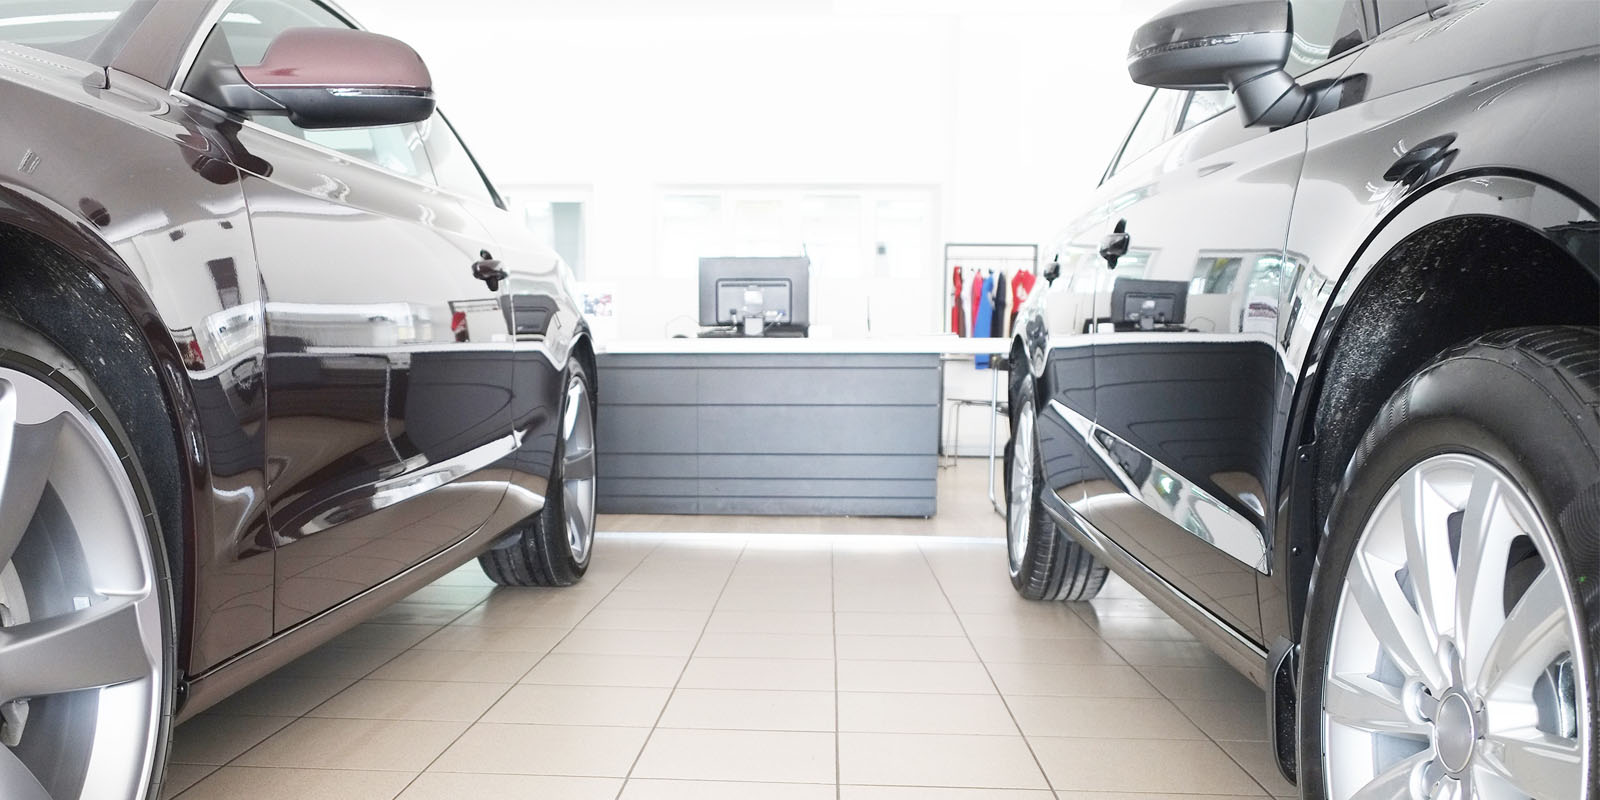 Car dealer cleaning services Los Angeles